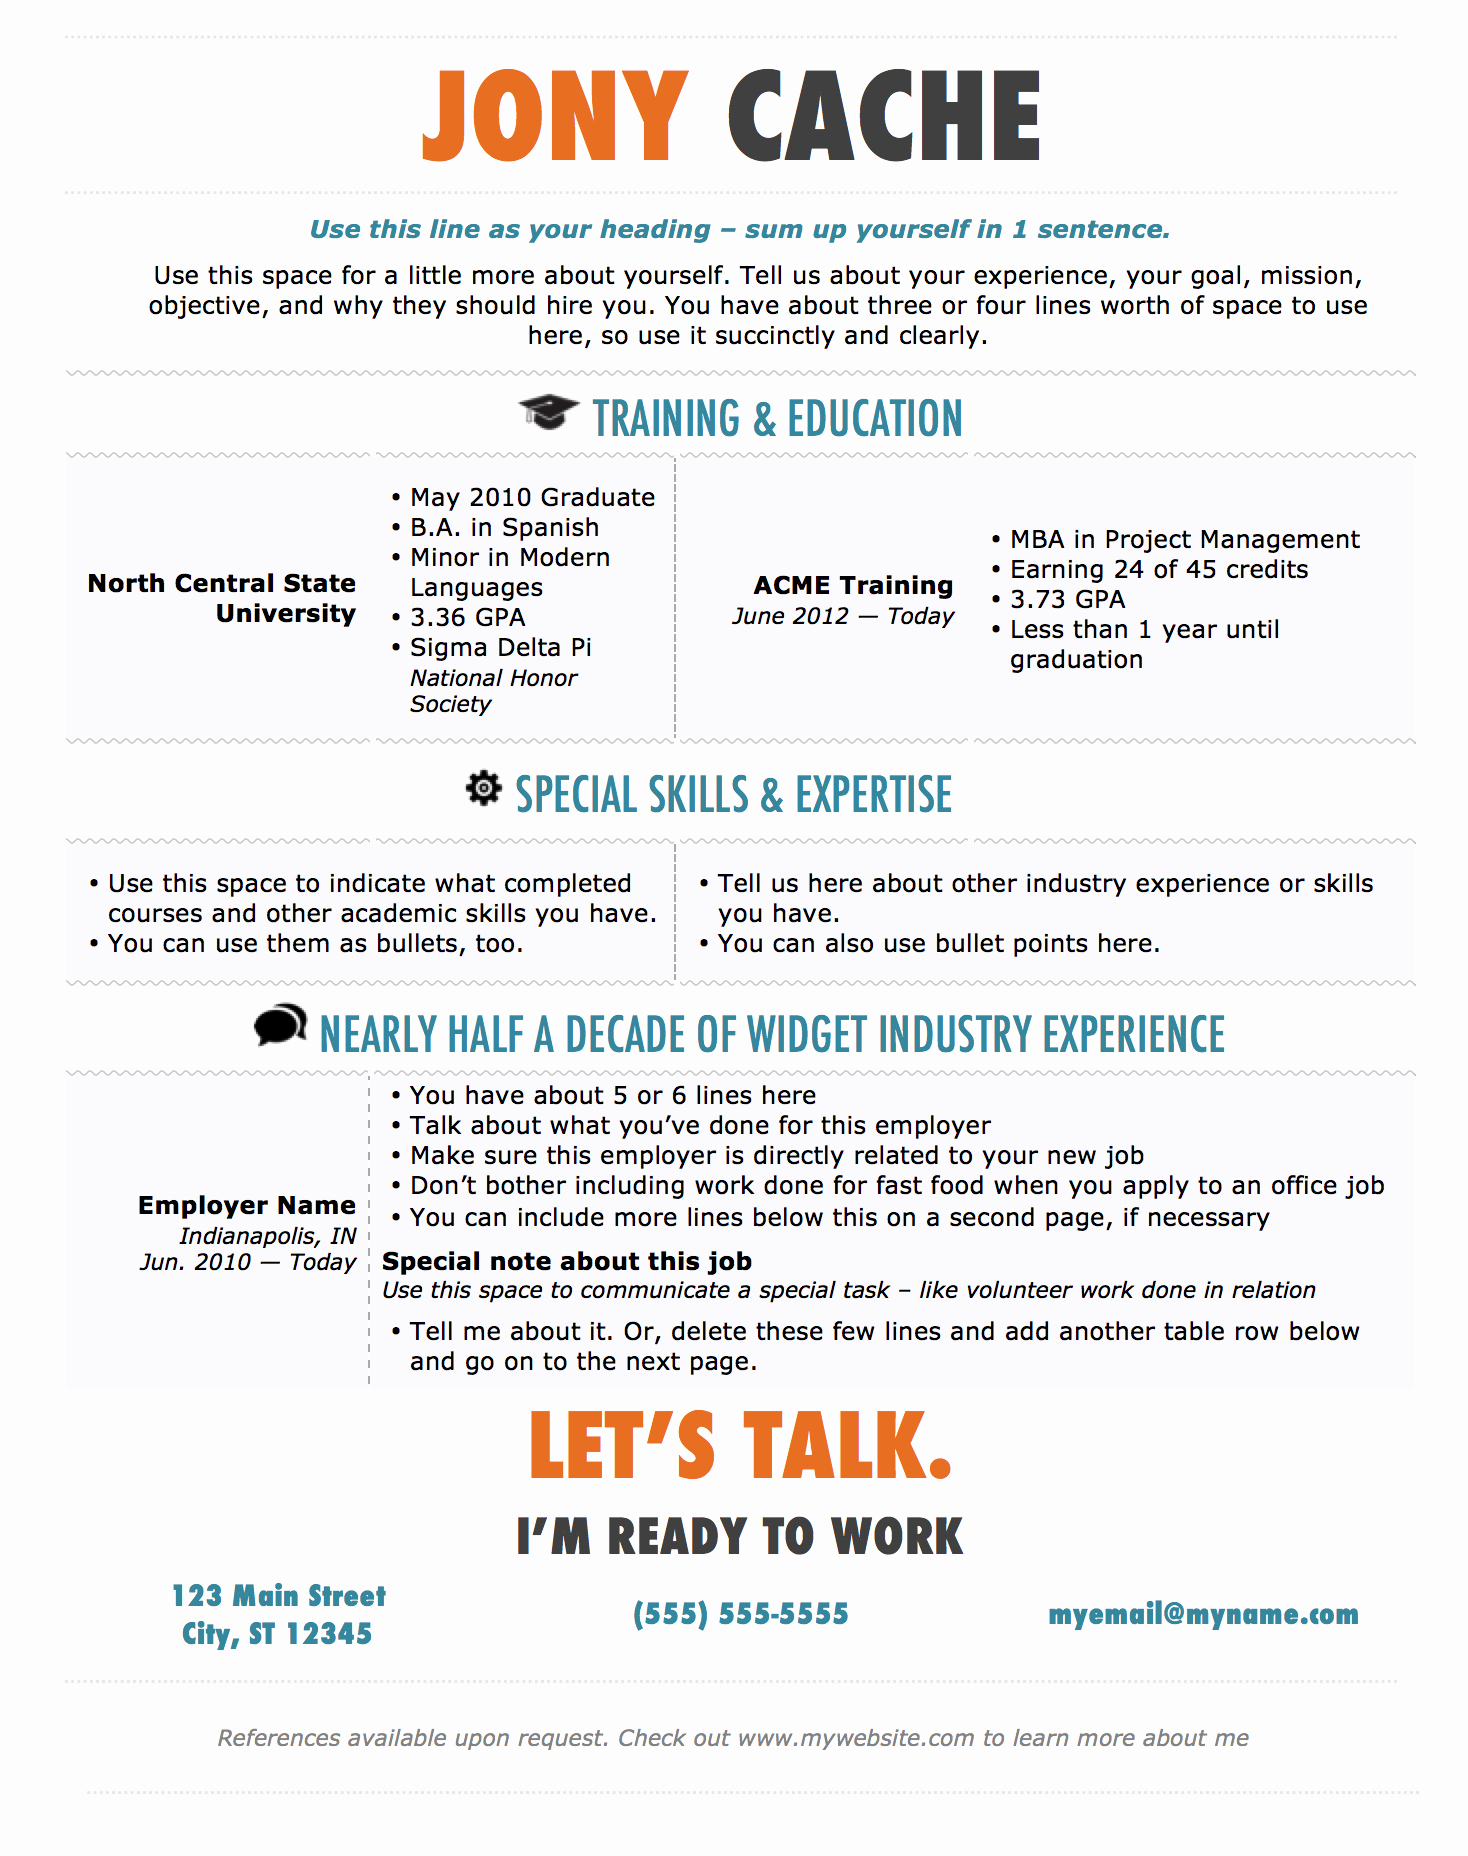 Ms Word Template for Resume Awesome Modern Resume Template for Microsoft Word — Superpixel